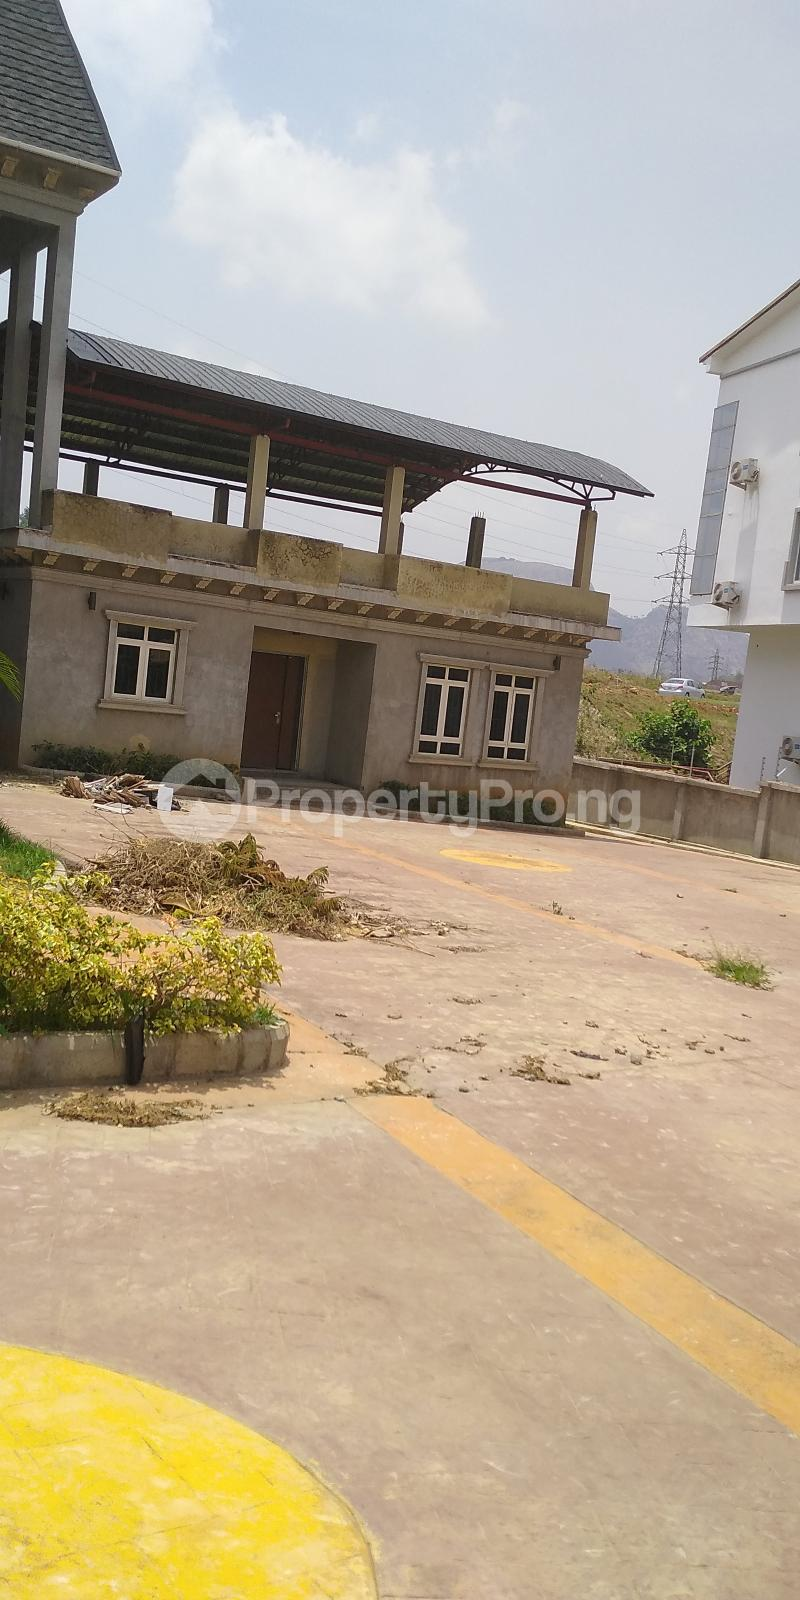 5 bedroom Detached Duplex House for sale Abubakar Koko Street, Off Sule Maitama Street Asokoro Abuja - 5